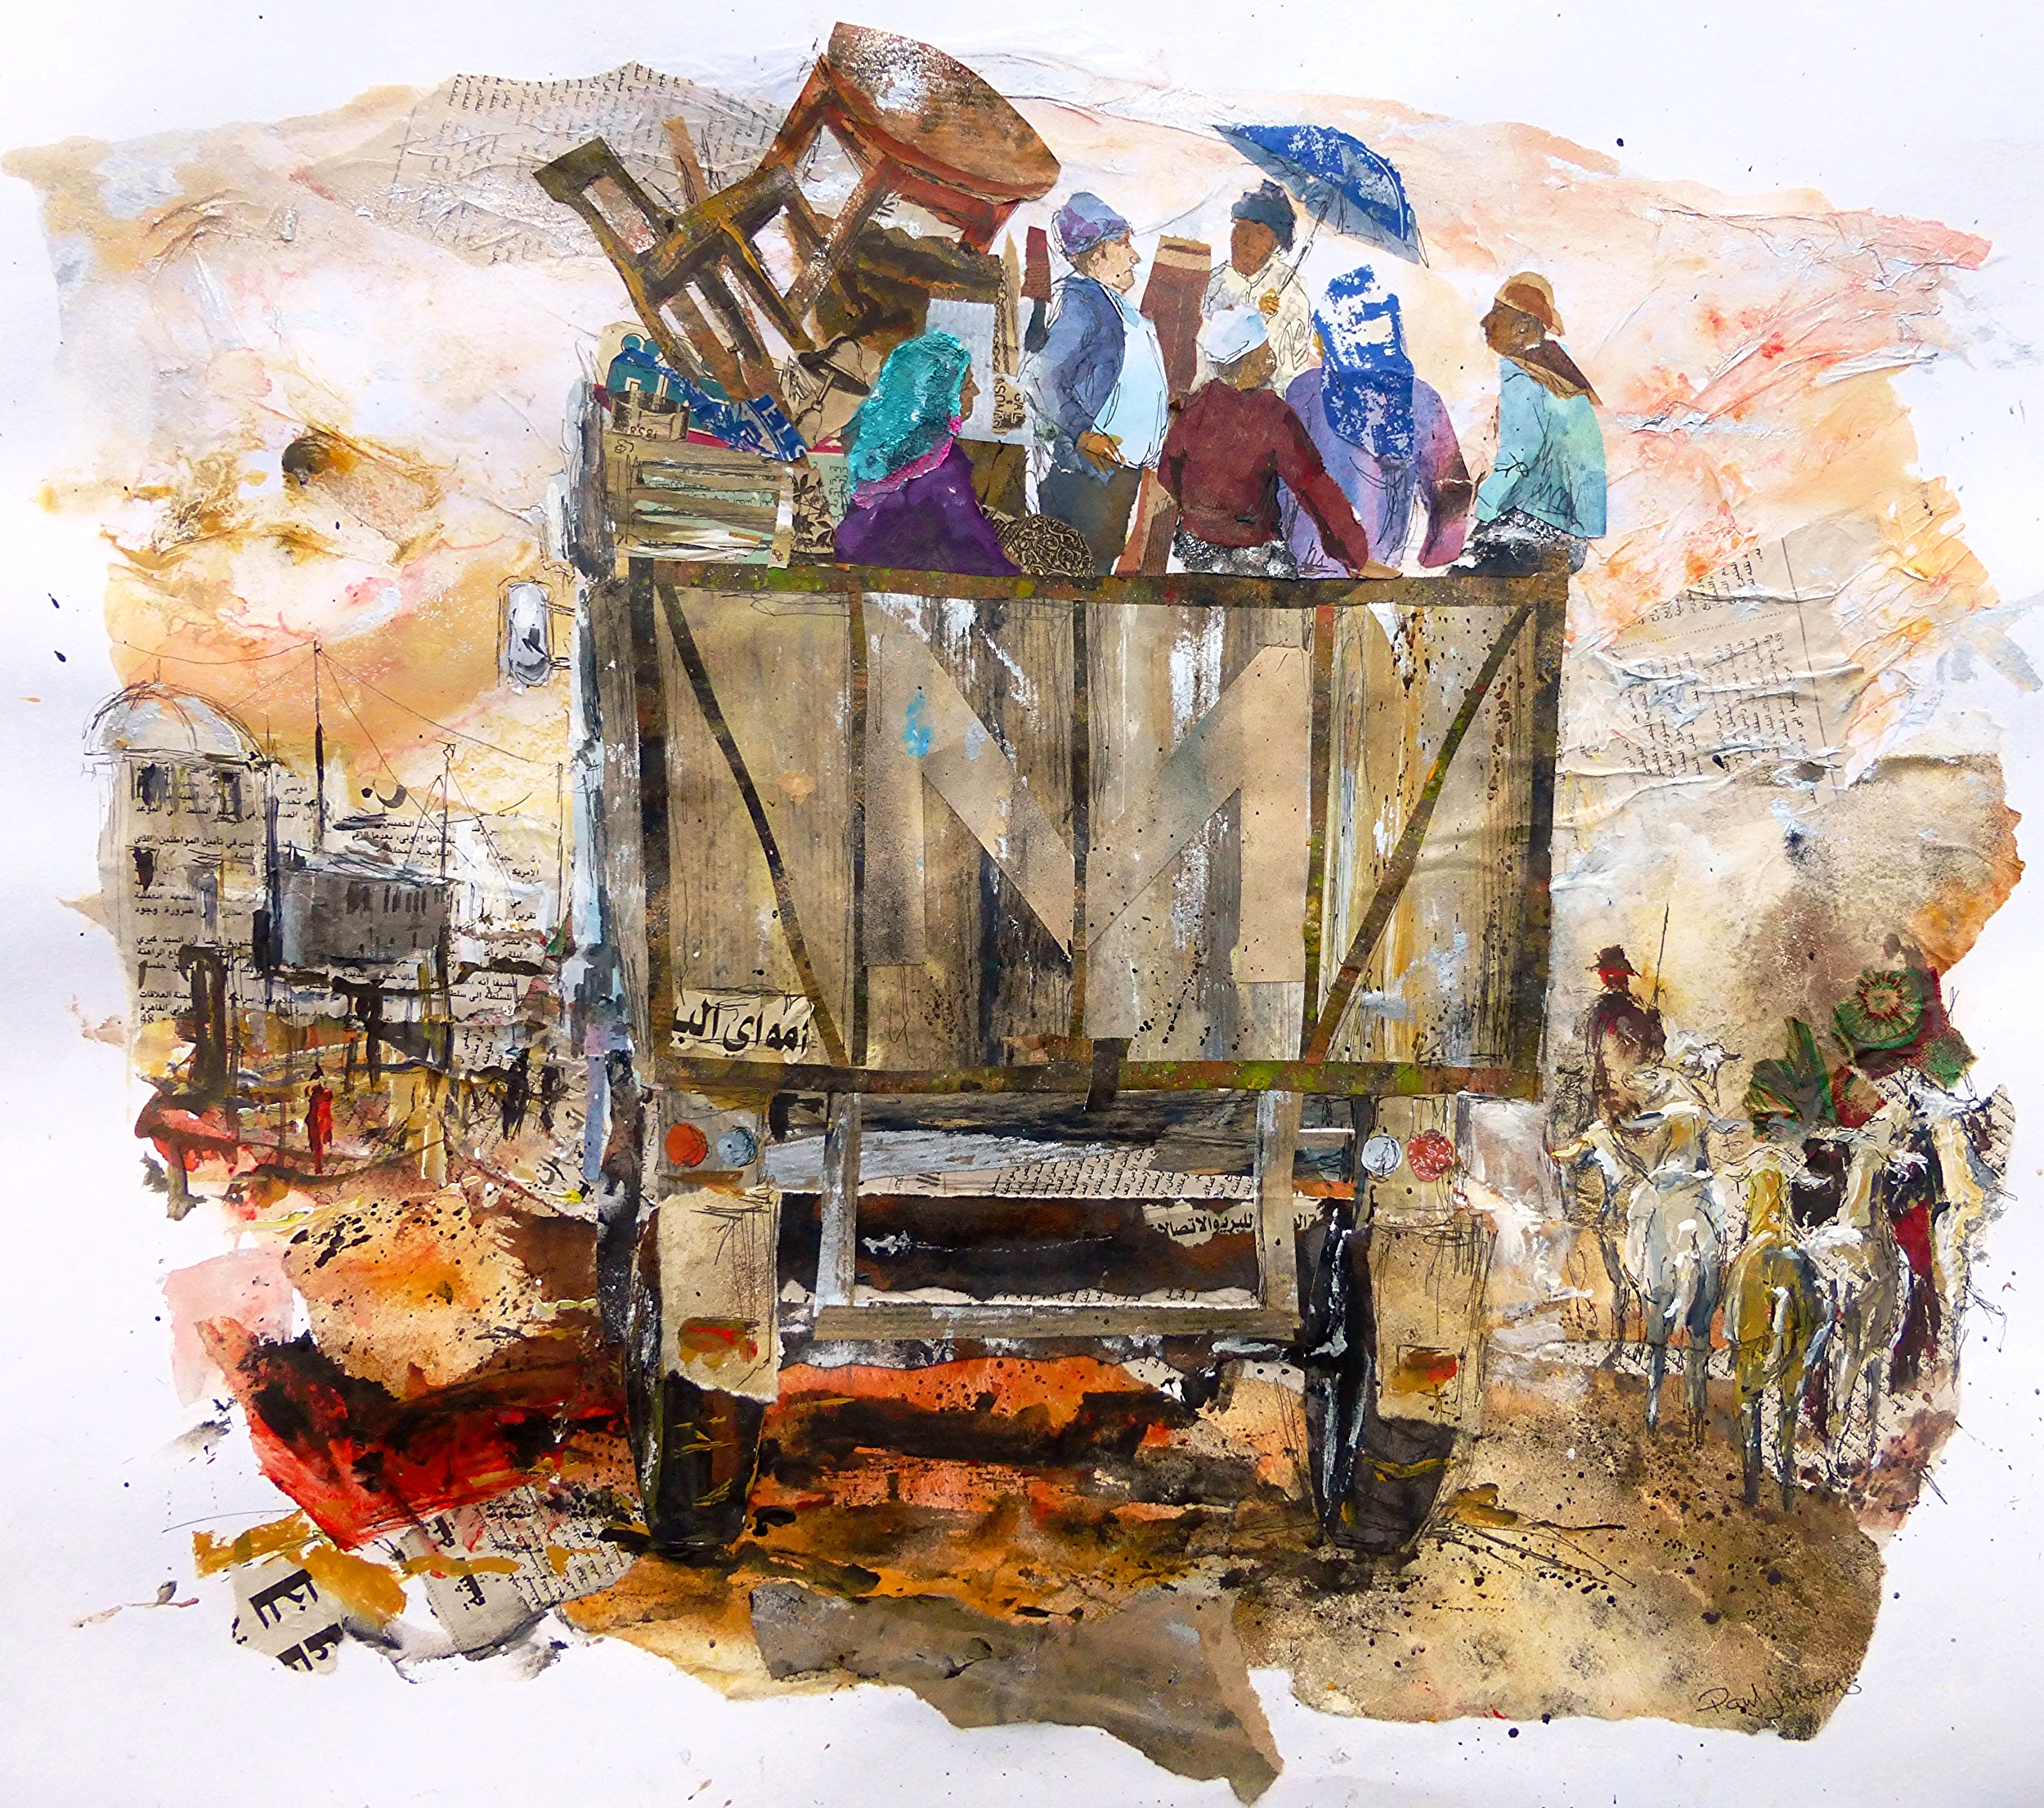 En route to Marrakech 2, Morocco, Collage, ink and acrylic